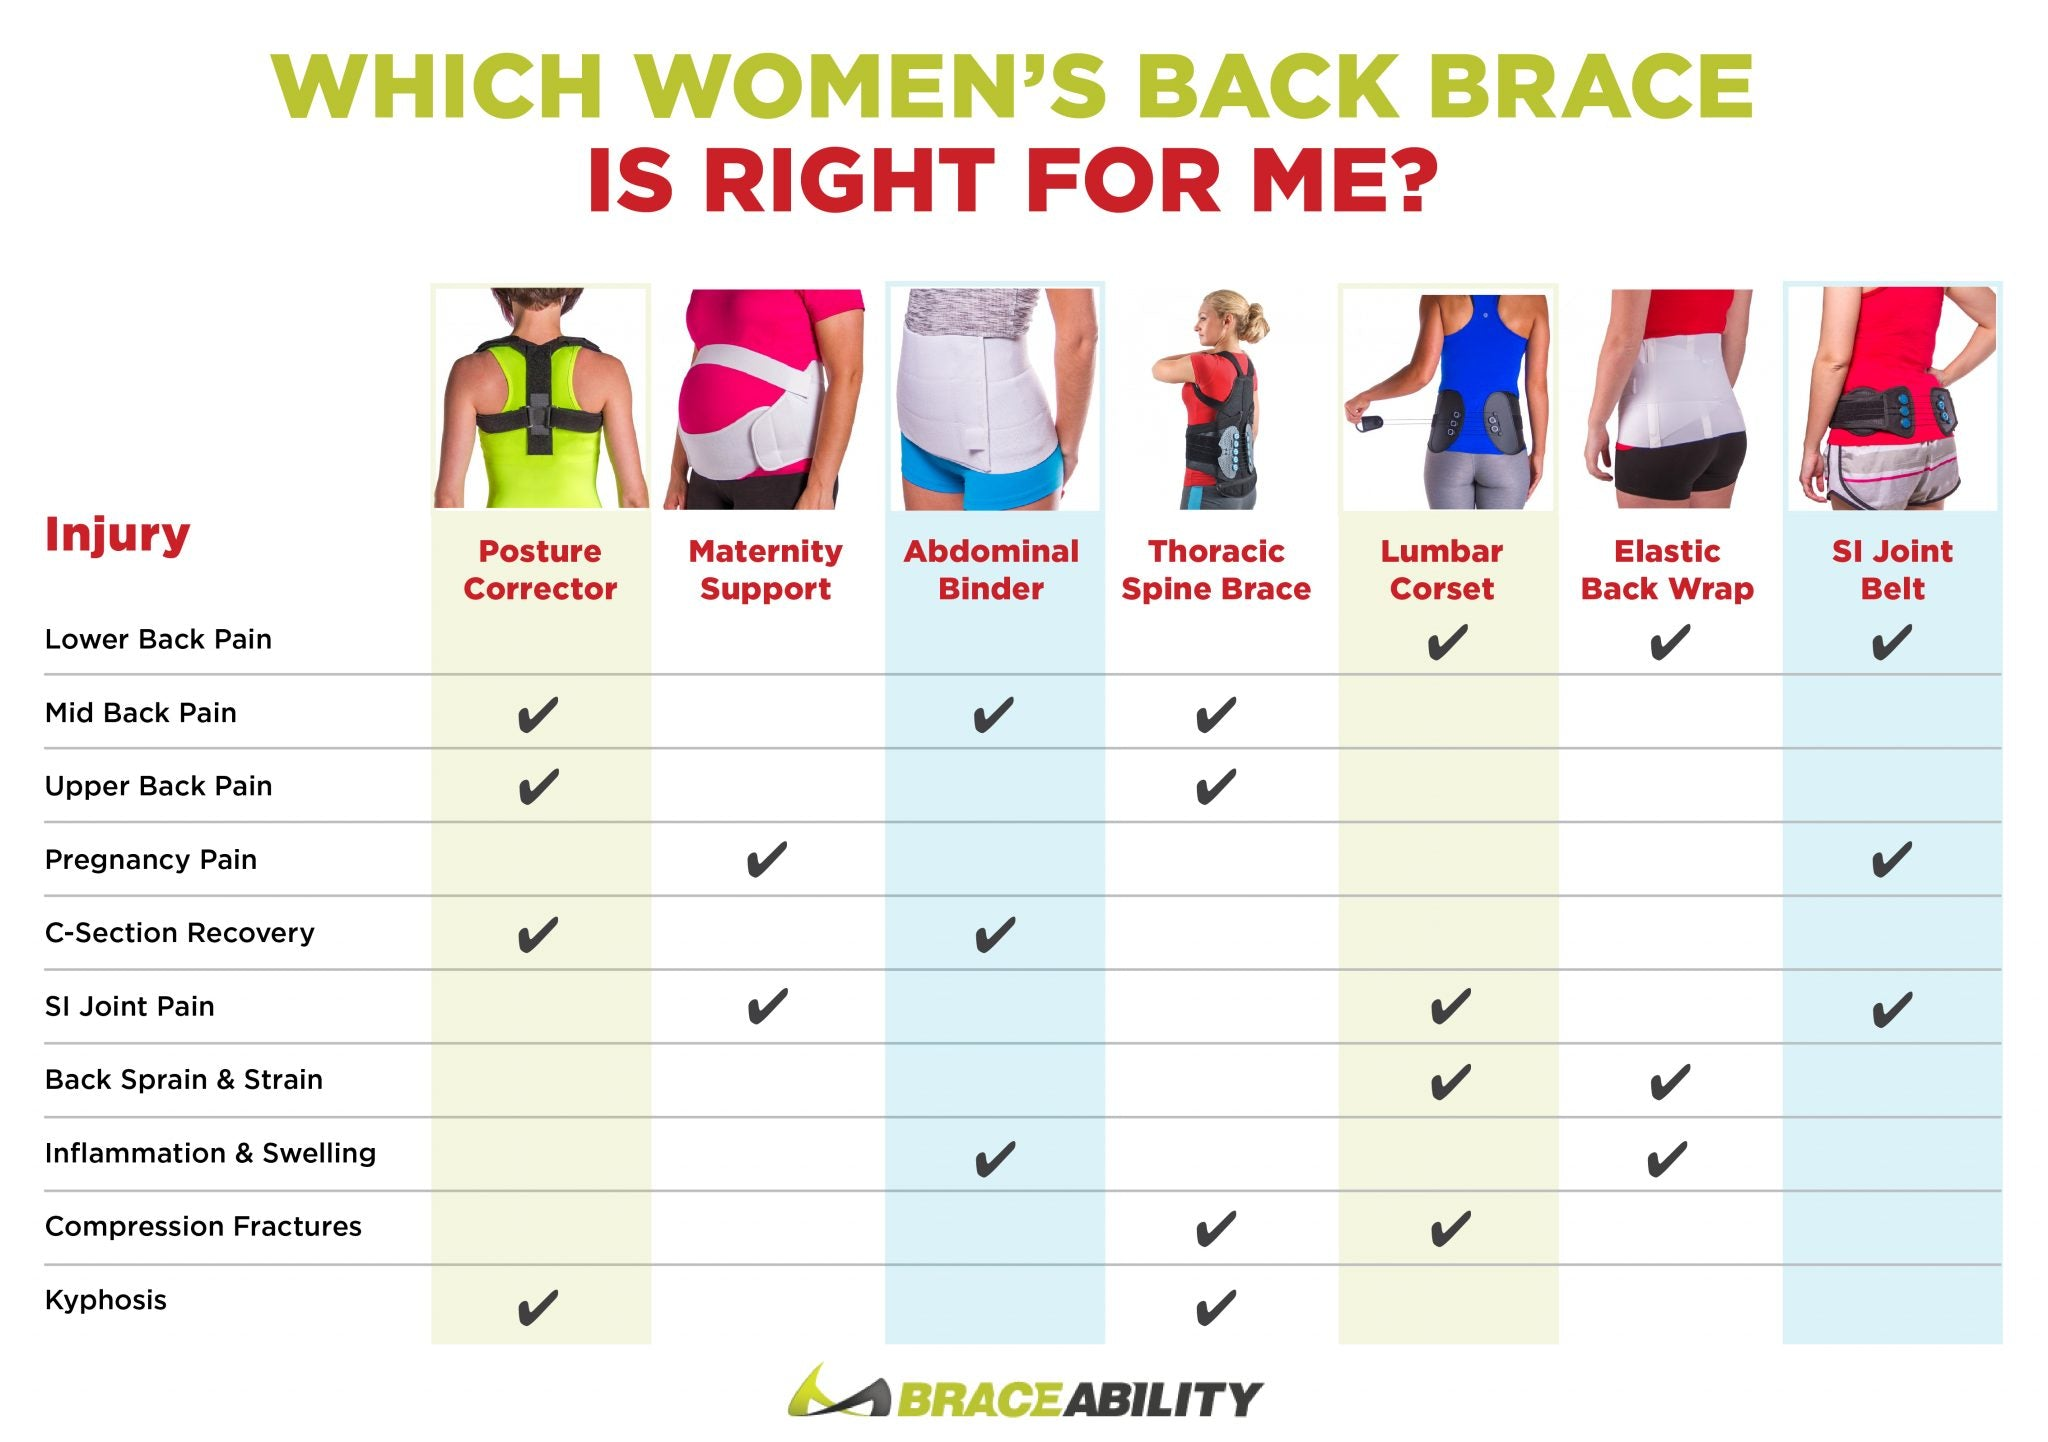 Use this list of back braces to determine which style of back brace you need for your specific injury